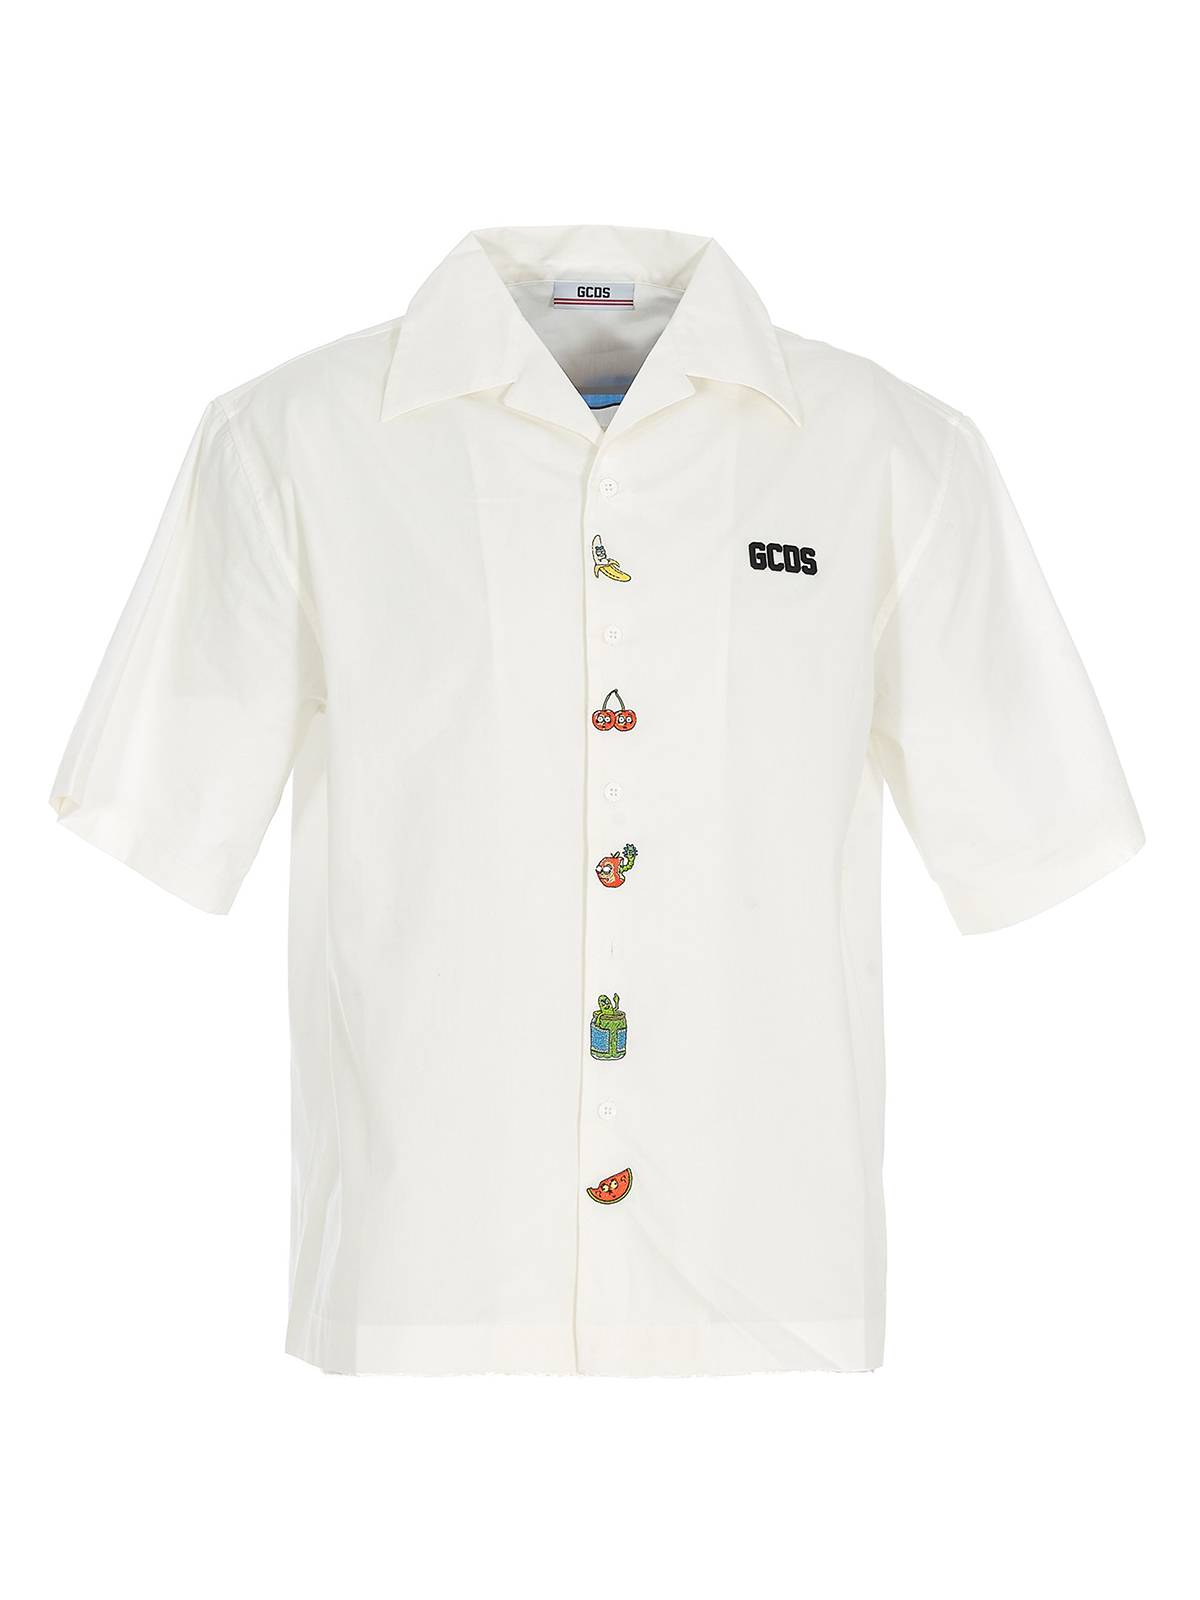 Gcds EMBROIDERED COTTON SHIRT